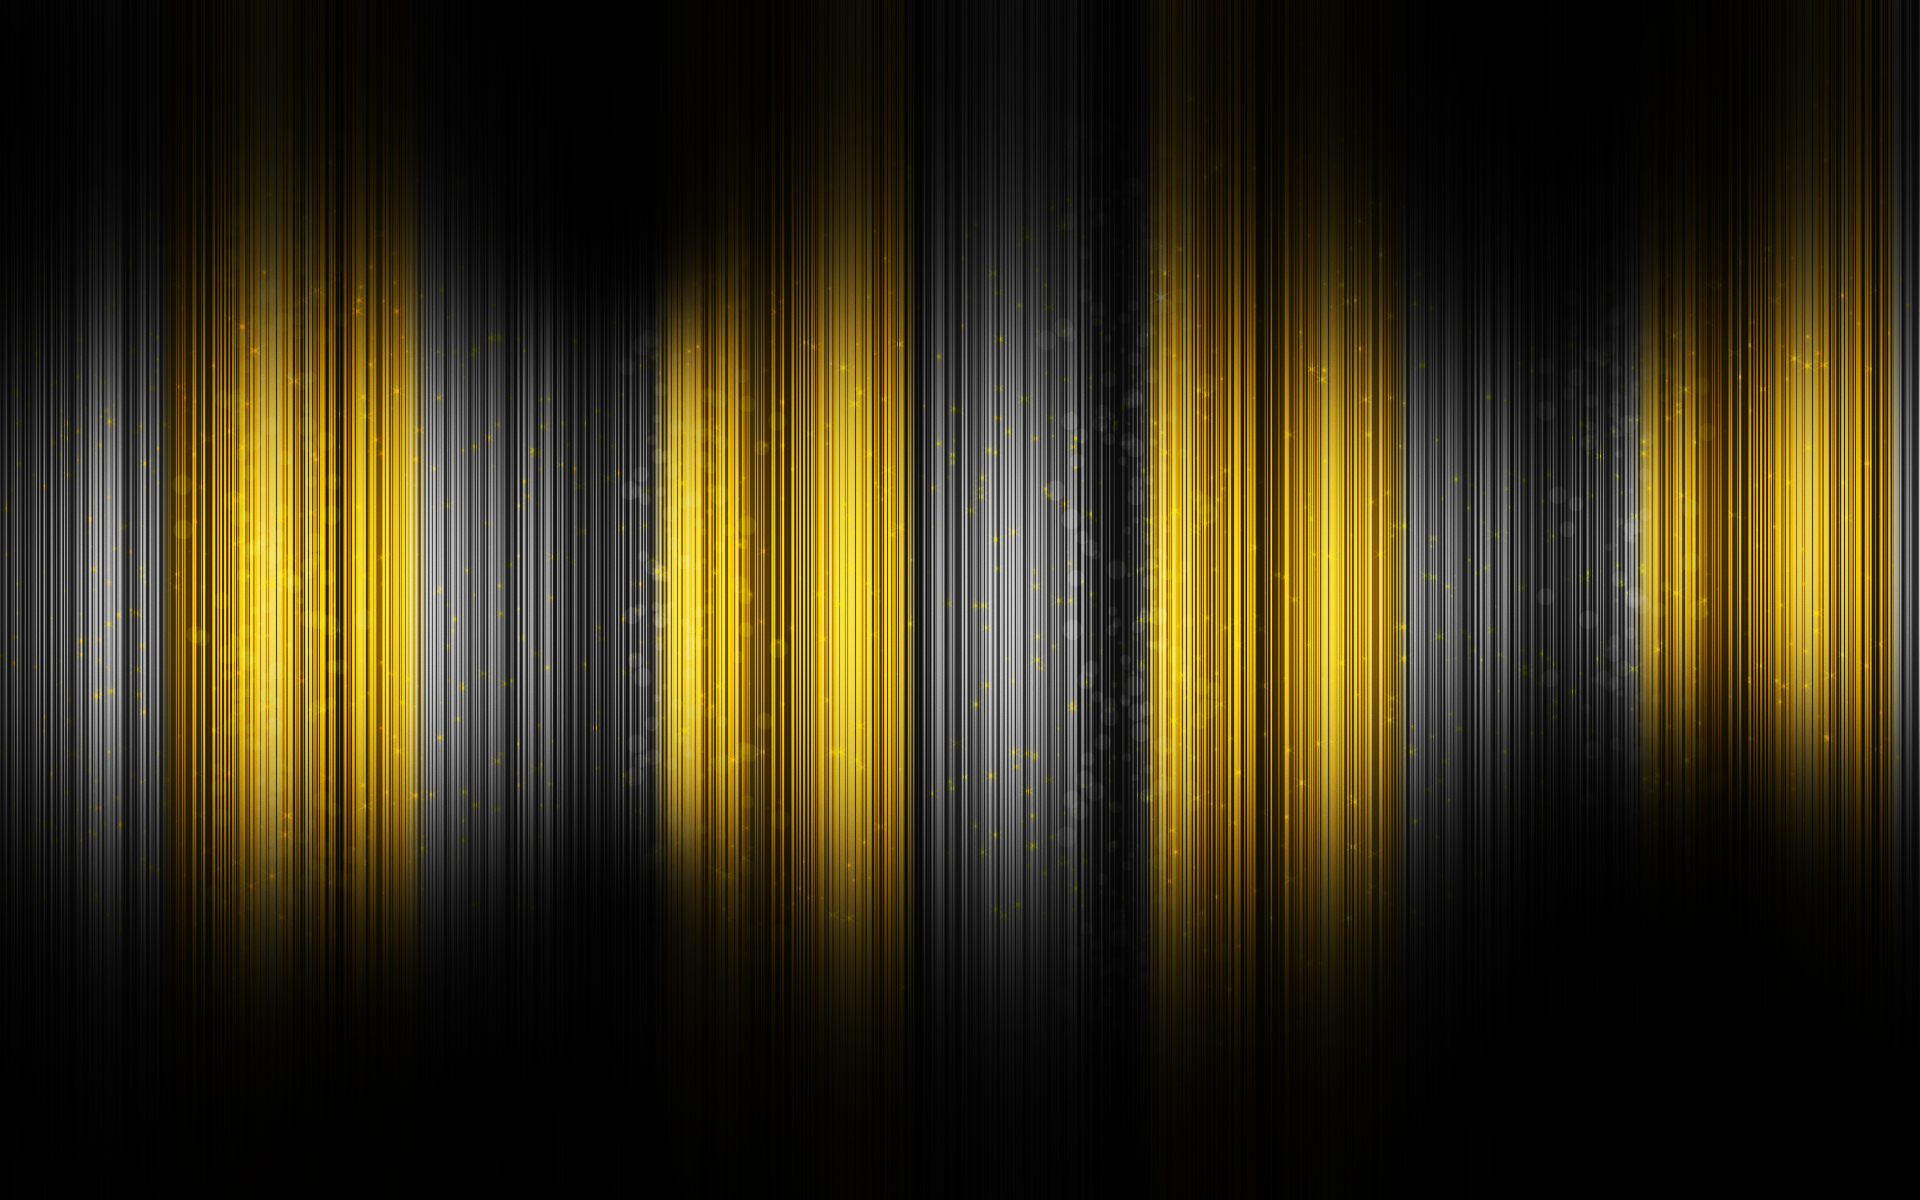 gold abstract wallpaper wch7i - photo #8